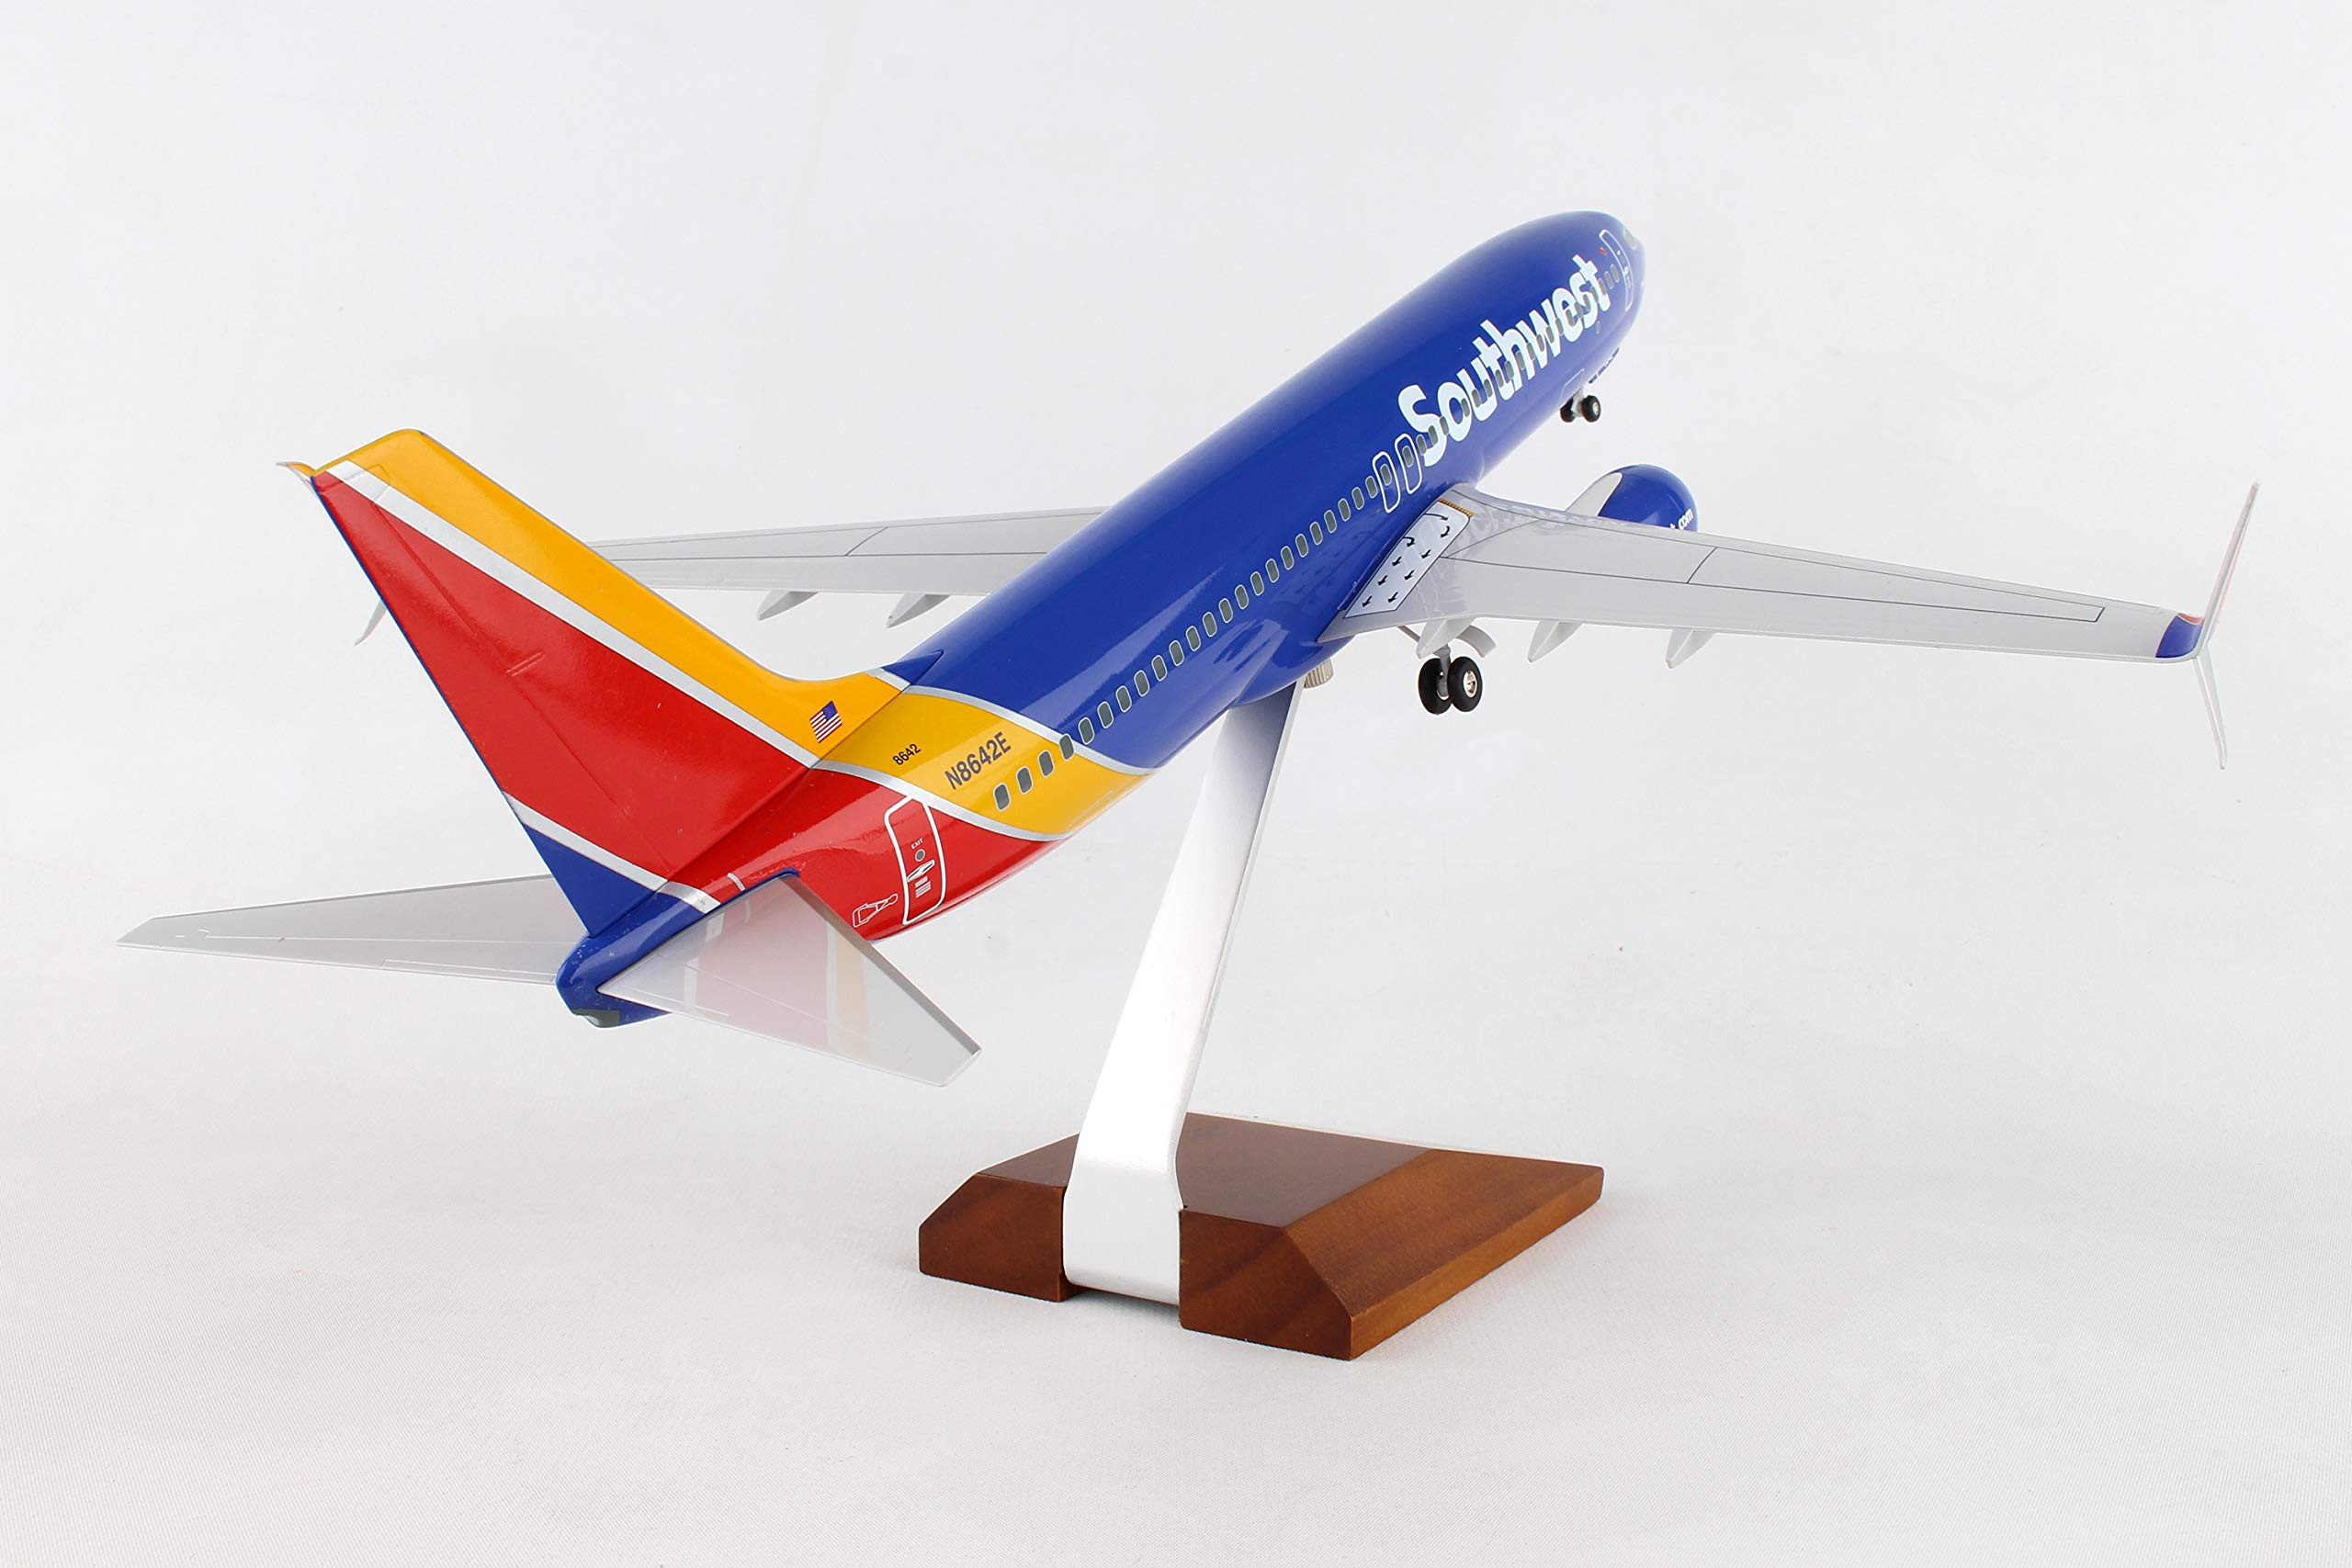 Daron 737-800 Skymarks Southwest Airplane Model with Gear & Wood Stand Heart (1/100 Scale) by Daron (Image #3)